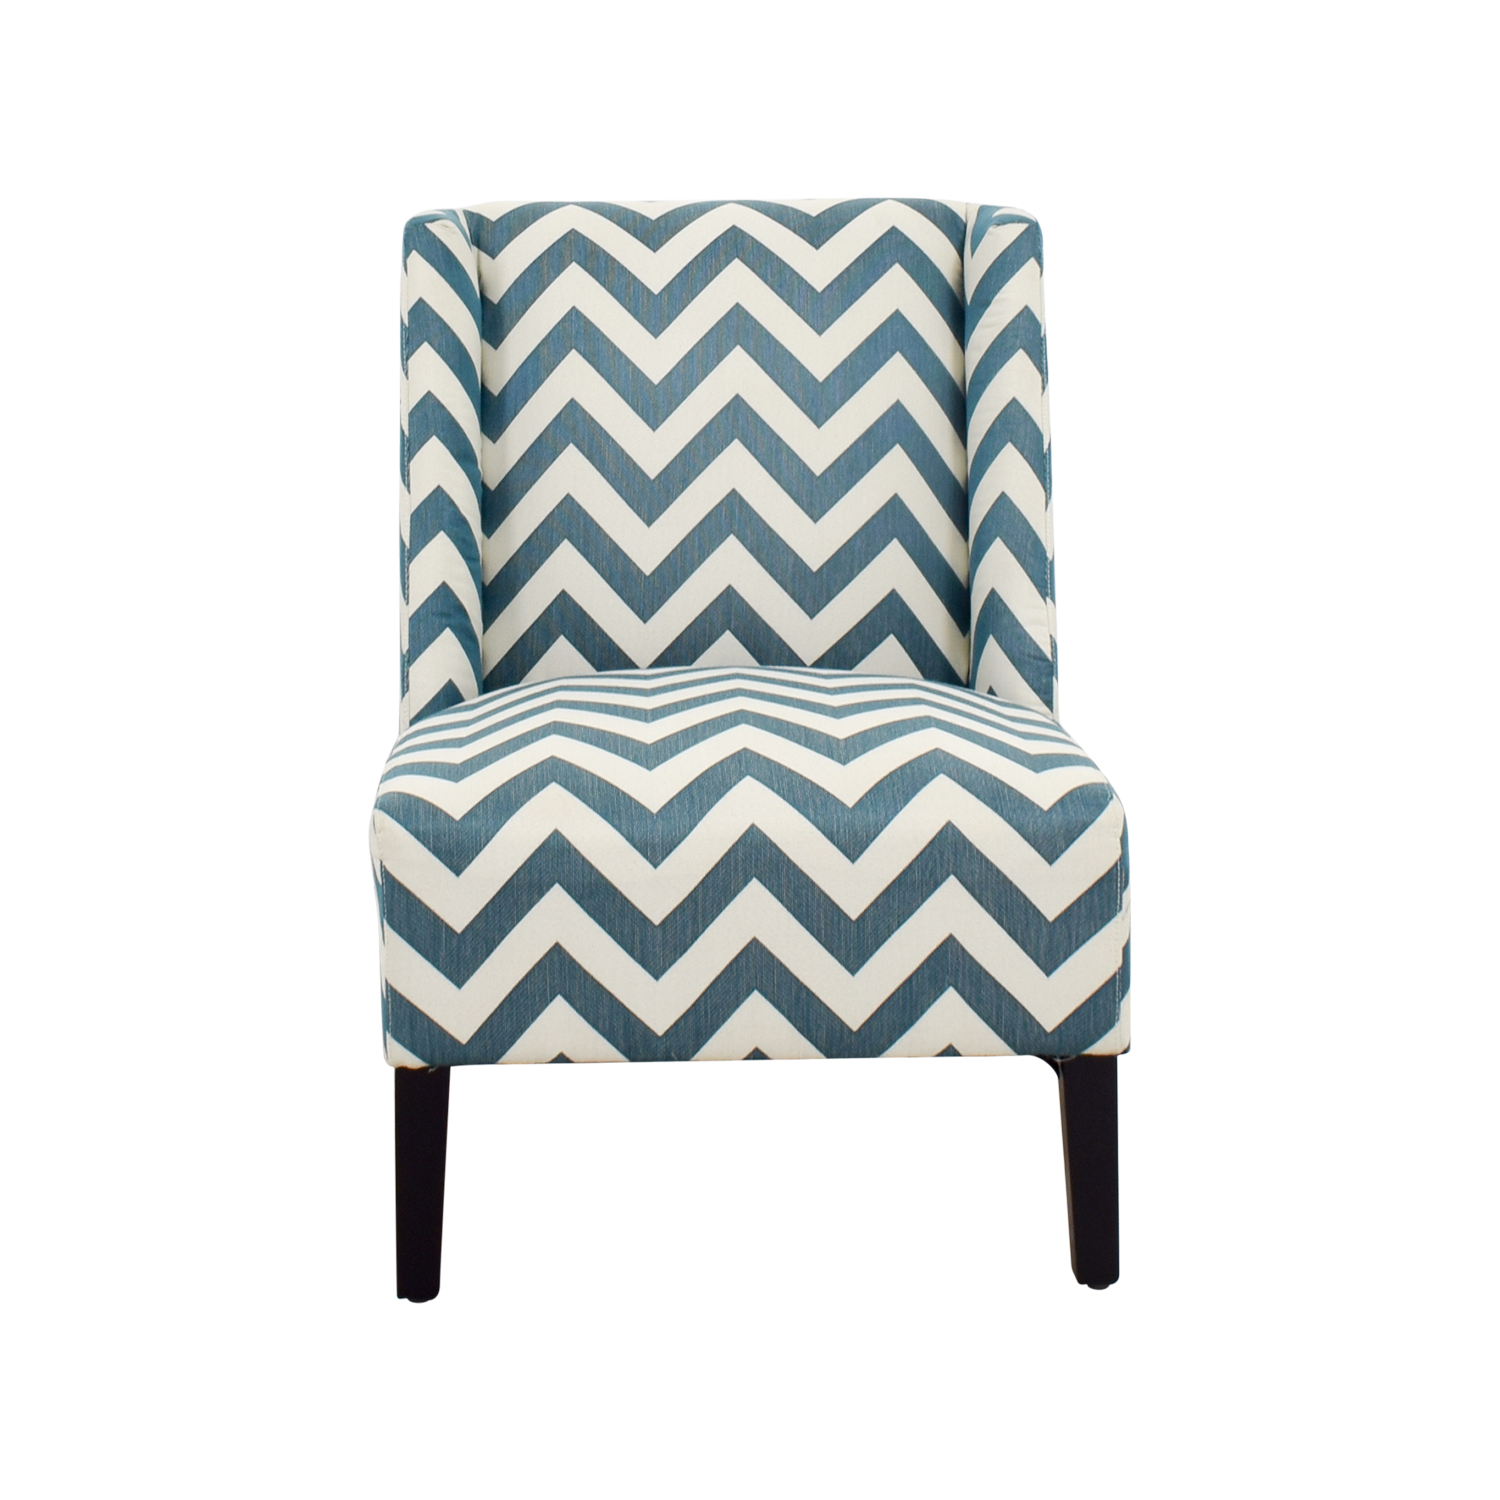 69% OFF Pier 1 Imports Pier 1 Imports Owen Wing Chair Chairs